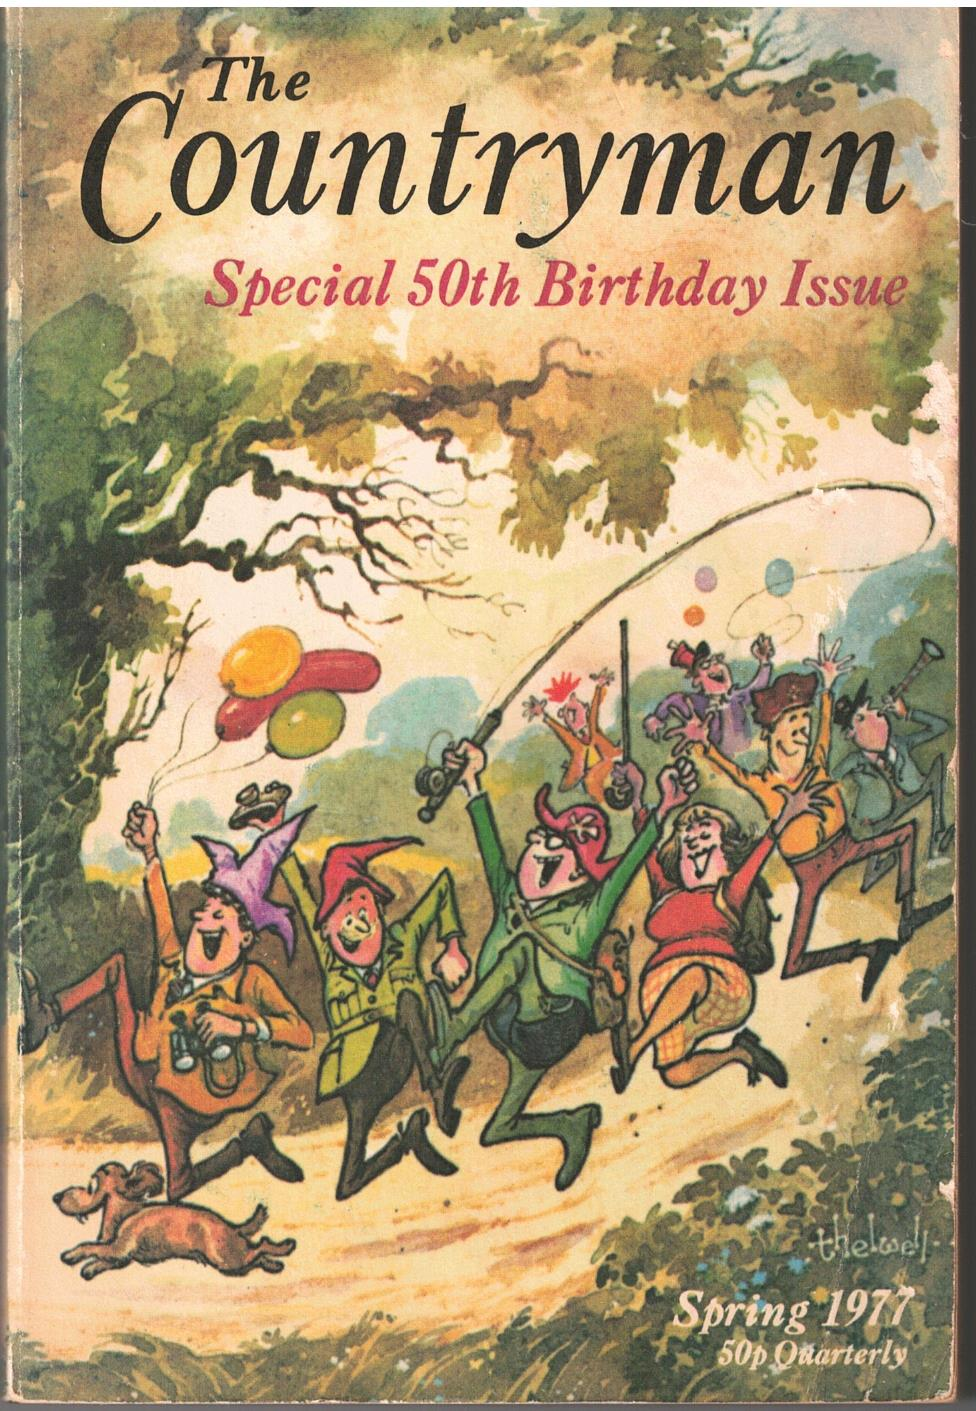 Image for The Countryman - Special 50th Birthday Issue - Spring 1977